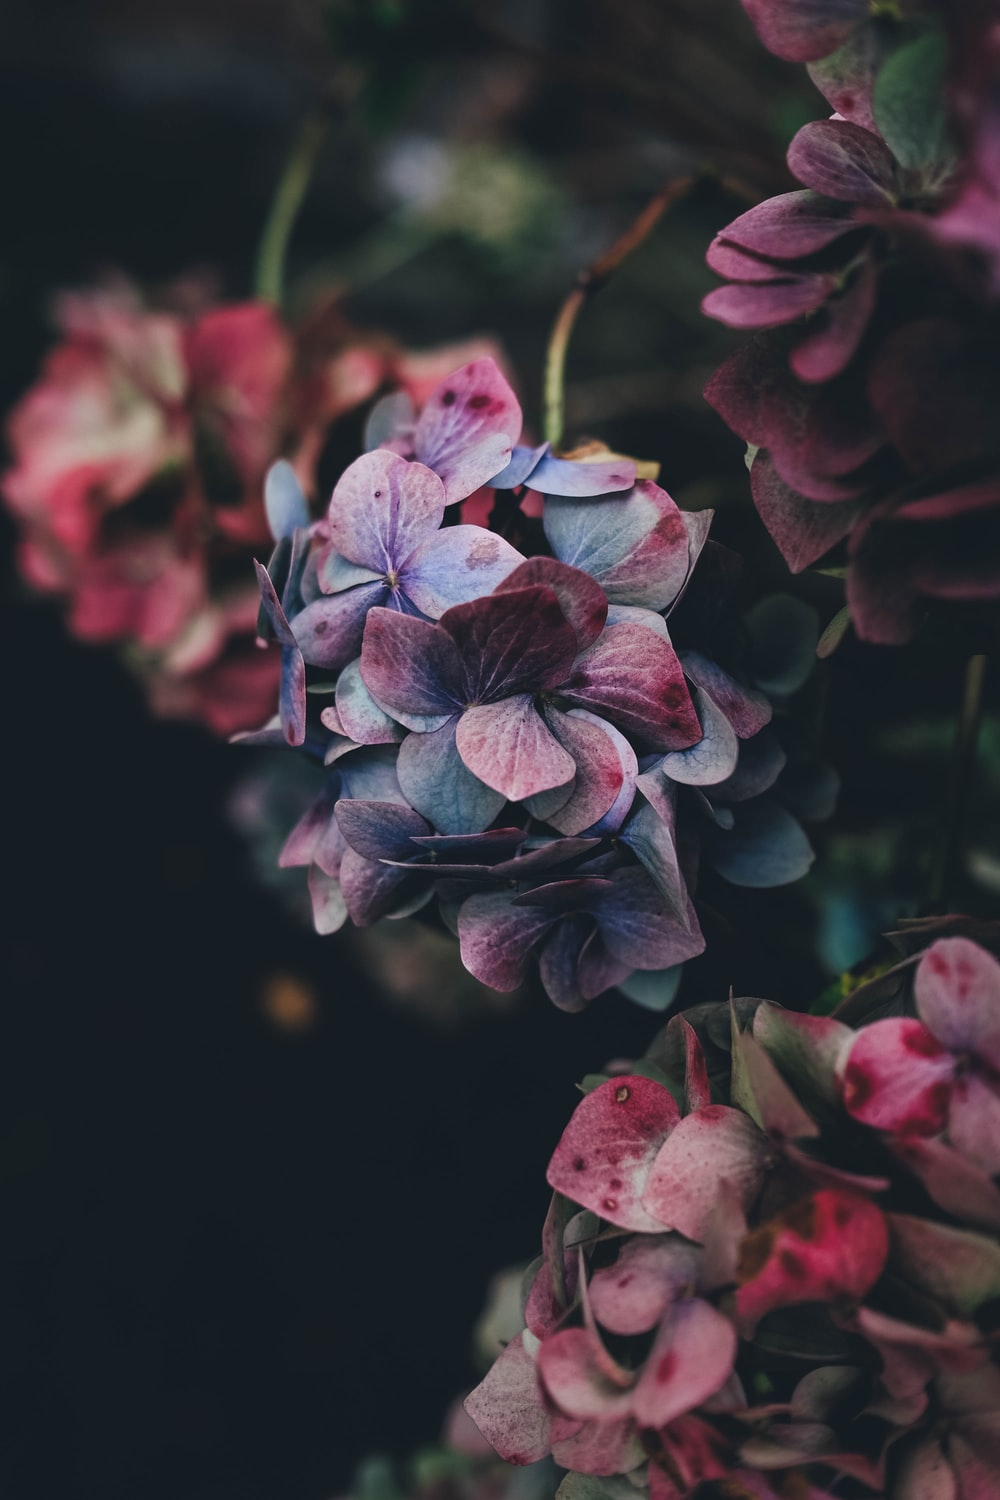 Floral Wallpapers Free Hd Download 500 Hq Unsplash